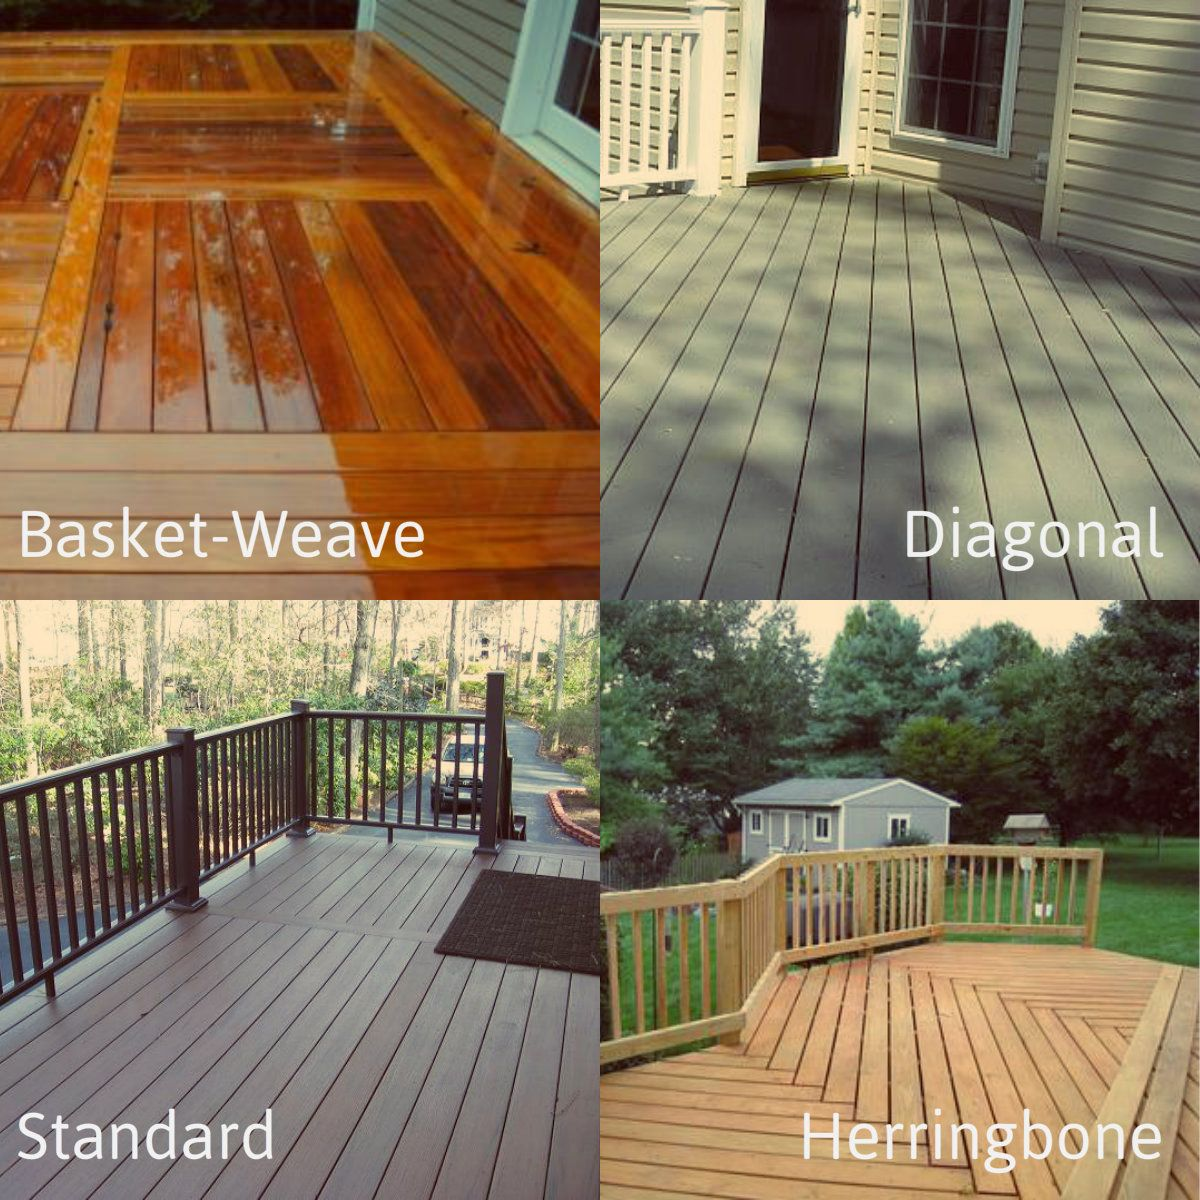 There are all types of decking patterns